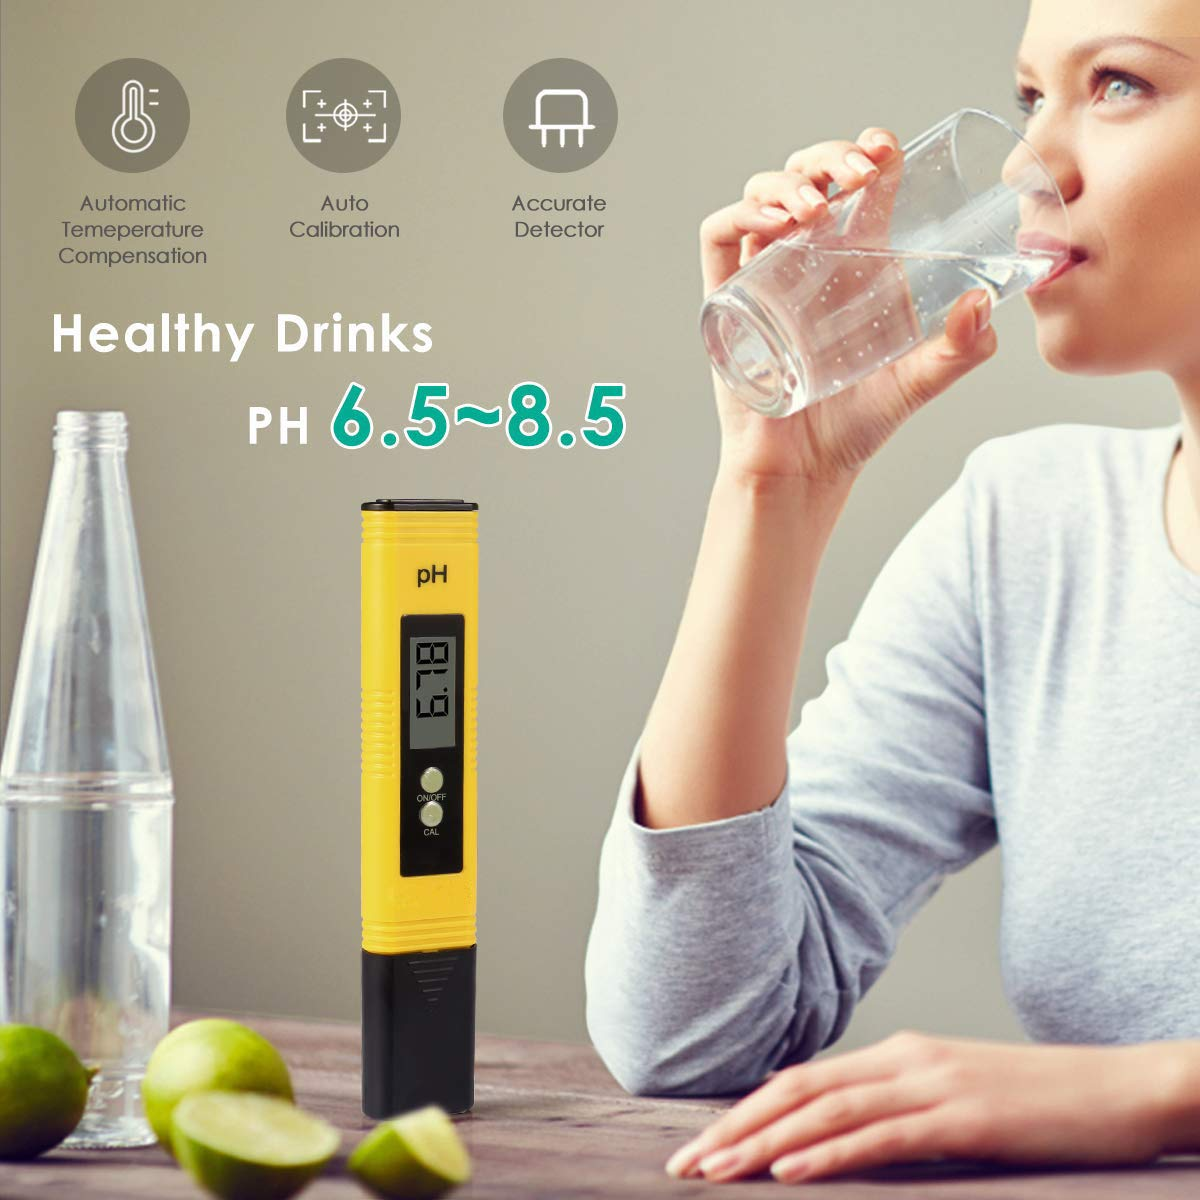 Vminno Digital PH Meter, PH Meter 0.01 PH High Accuracy Water Quality Tester with 0-14 PH Measurement Range for Household Drinking, Pool and Aquarium Water PH Tester Design with ATC by Vminno (Image #2)